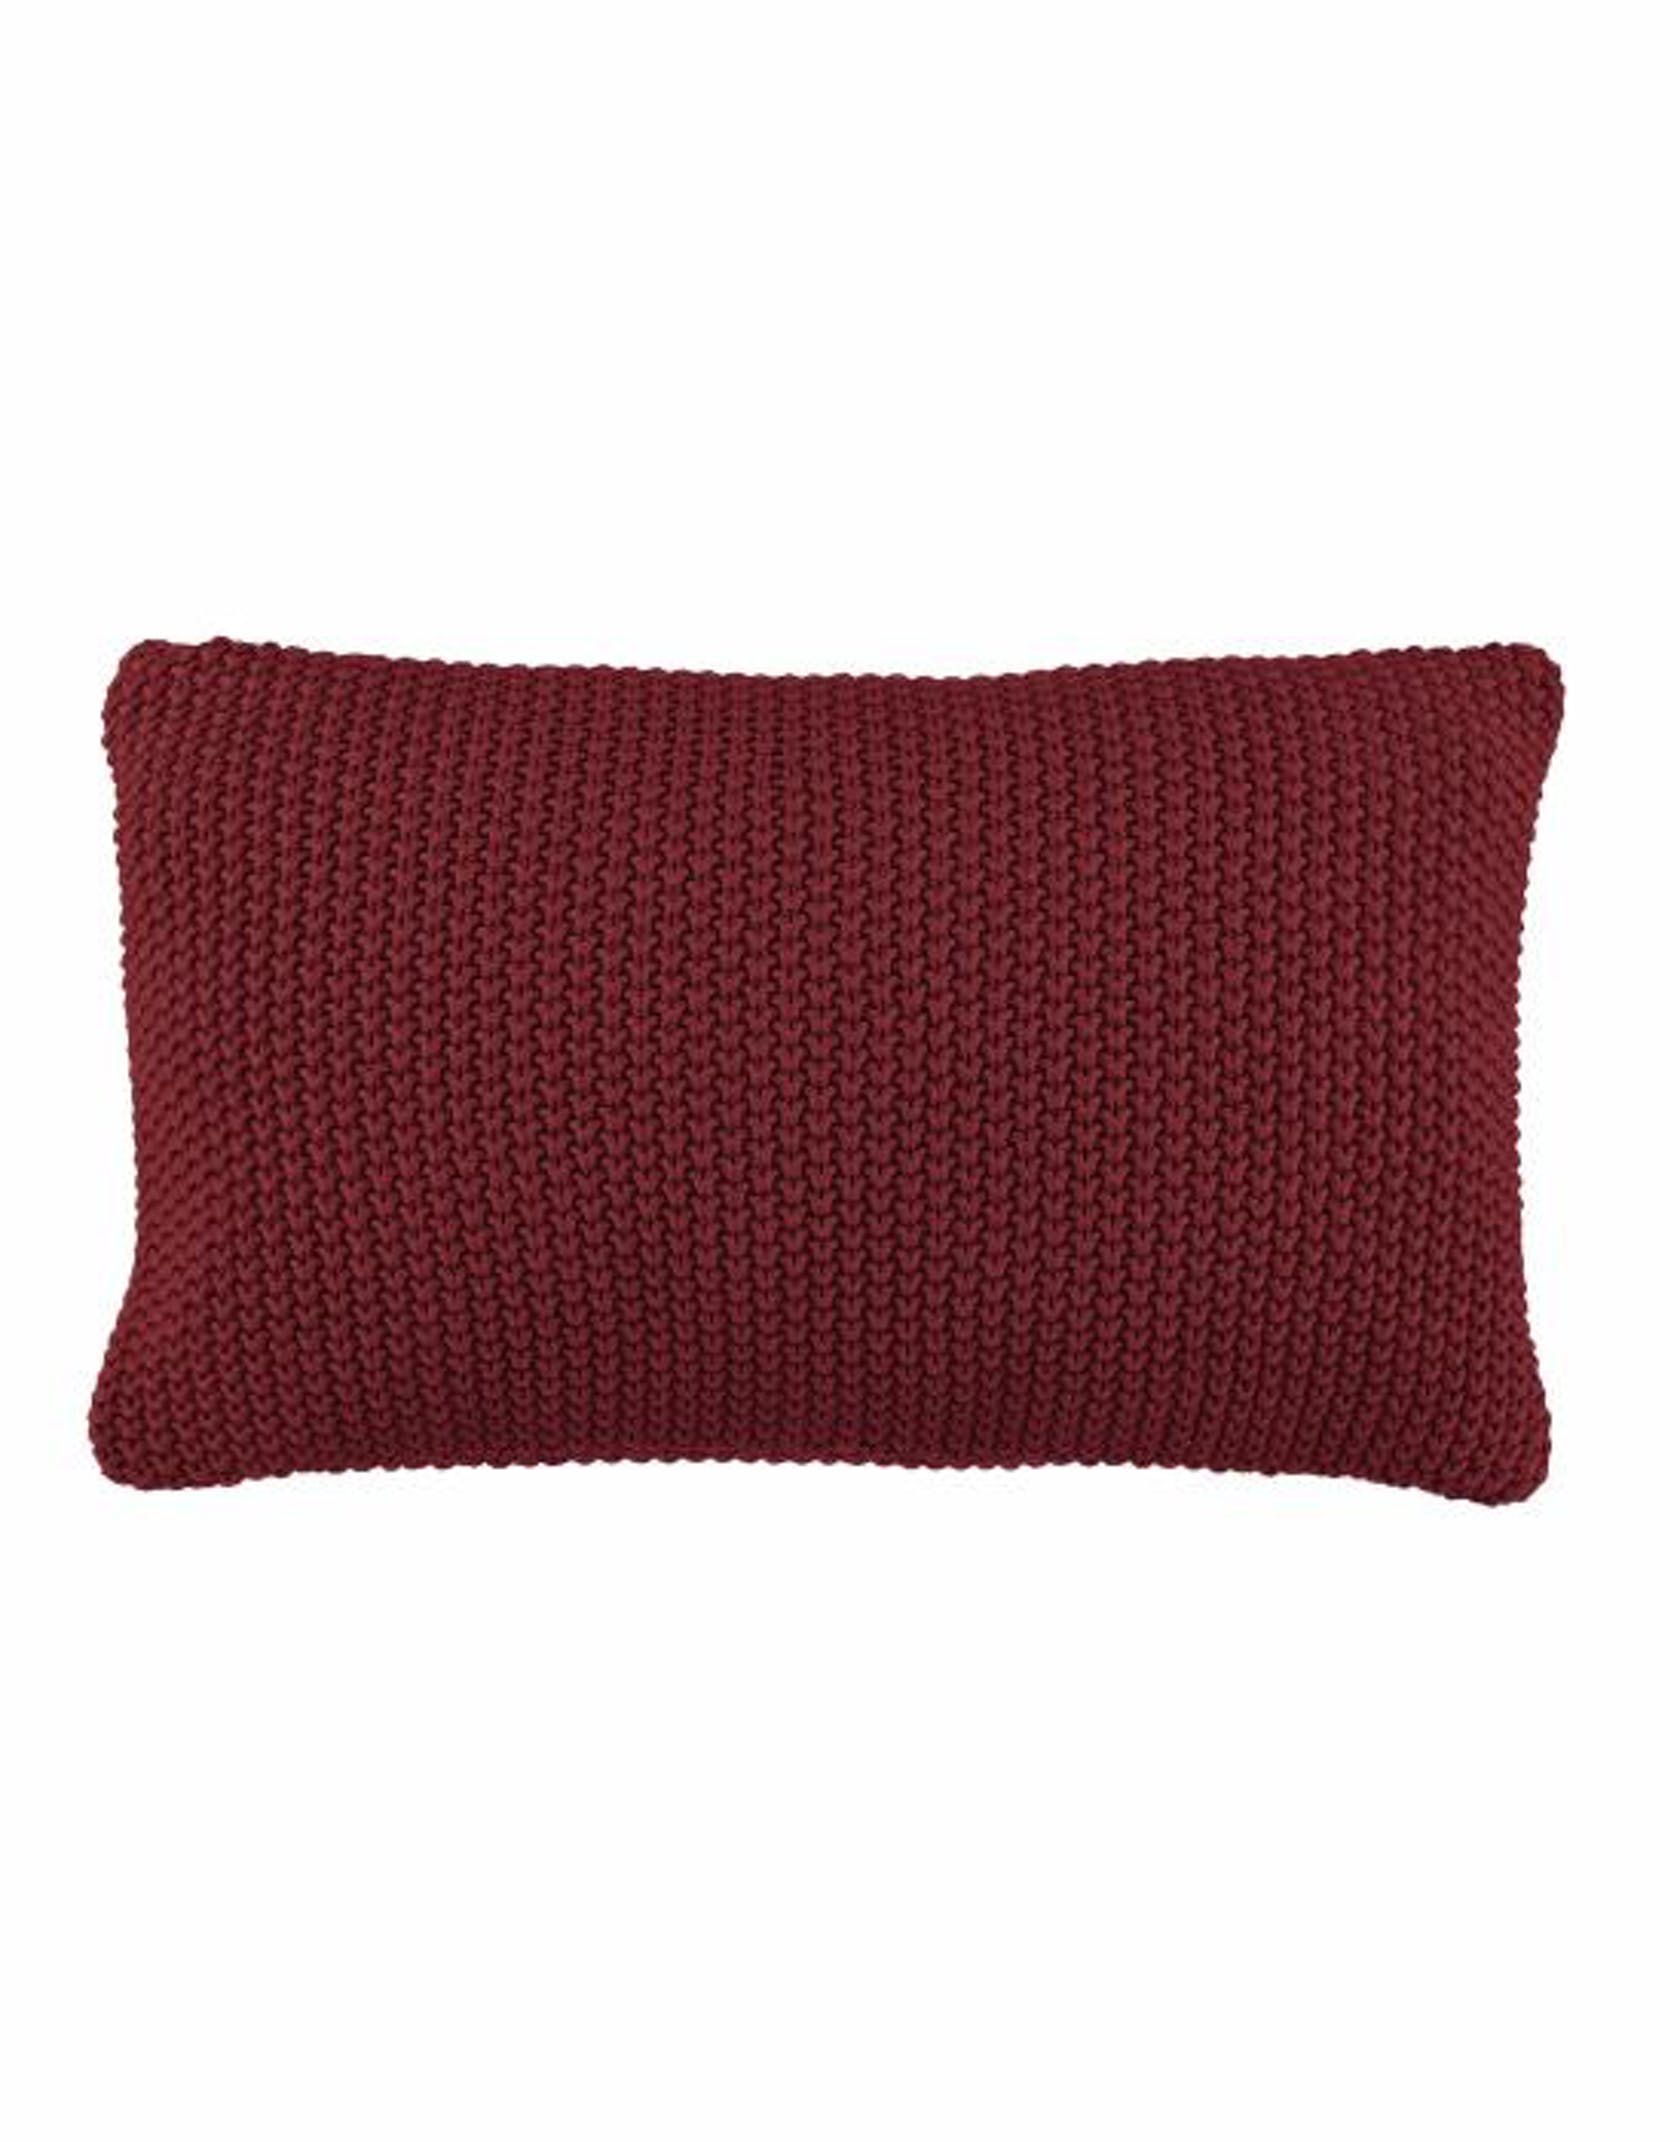 Marc O'Polo Nordic knit Cushion Red